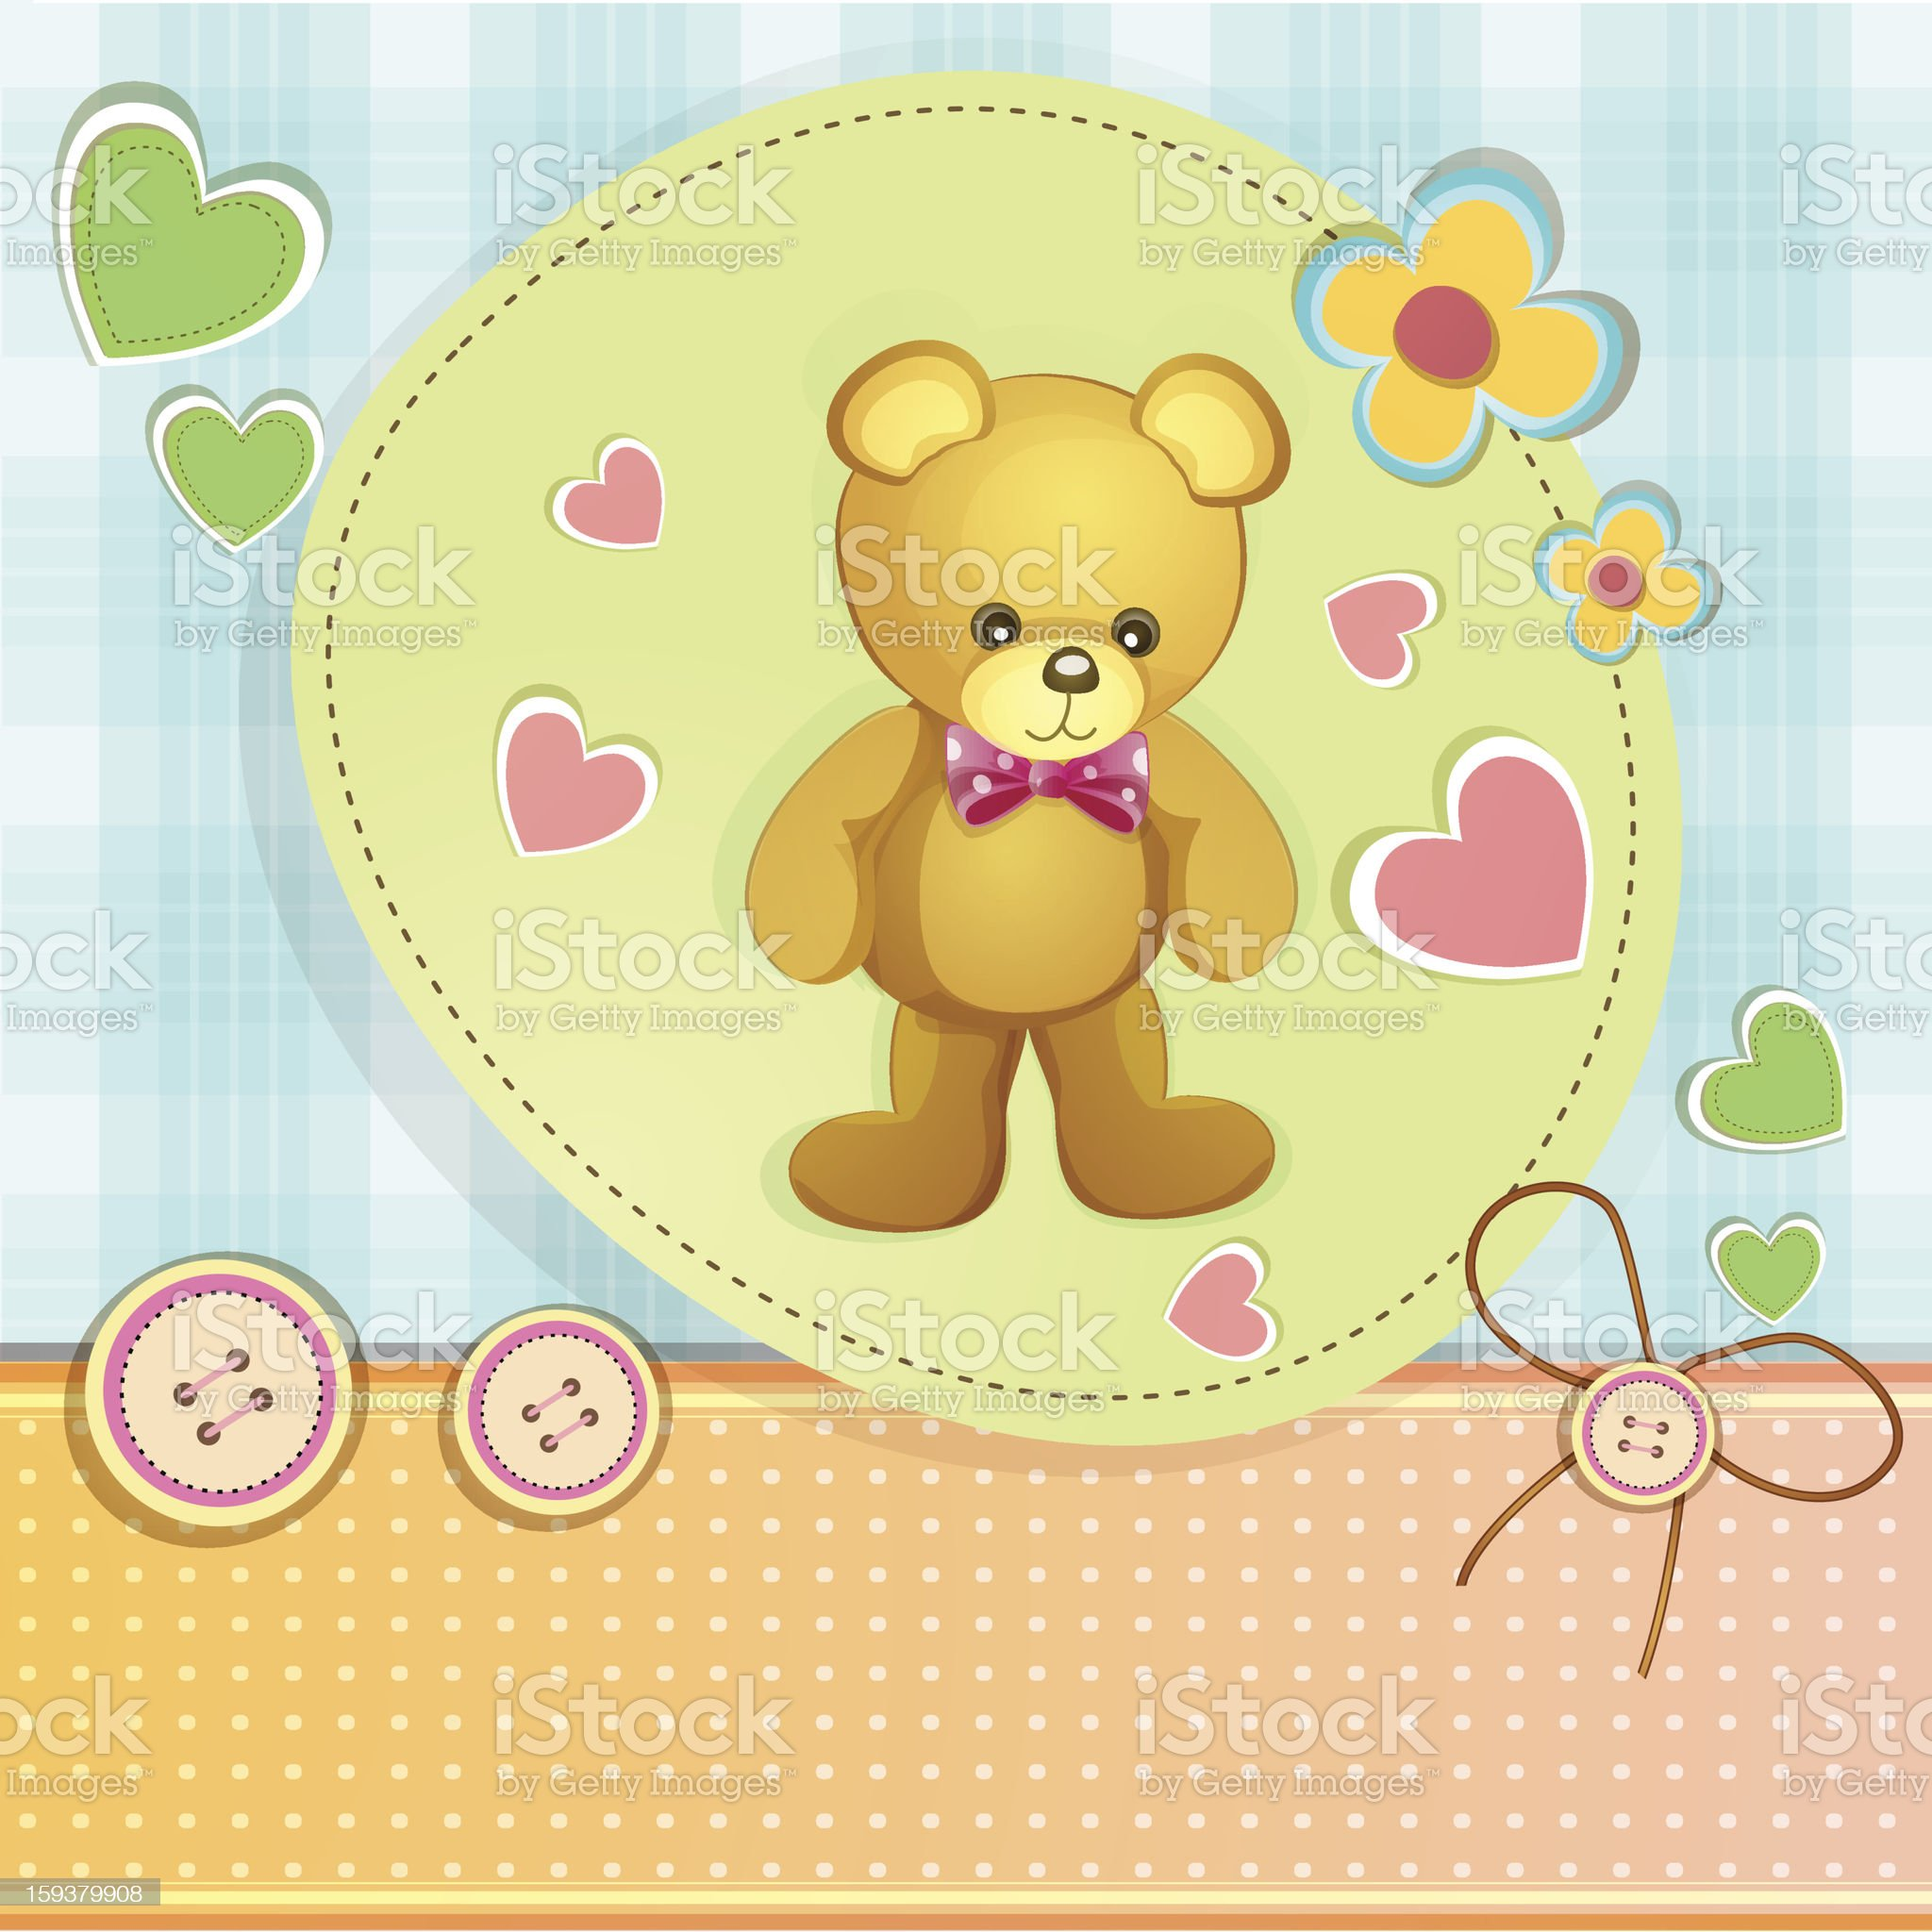 Baby shower card with cute teddy bear royalty-free stock vector art